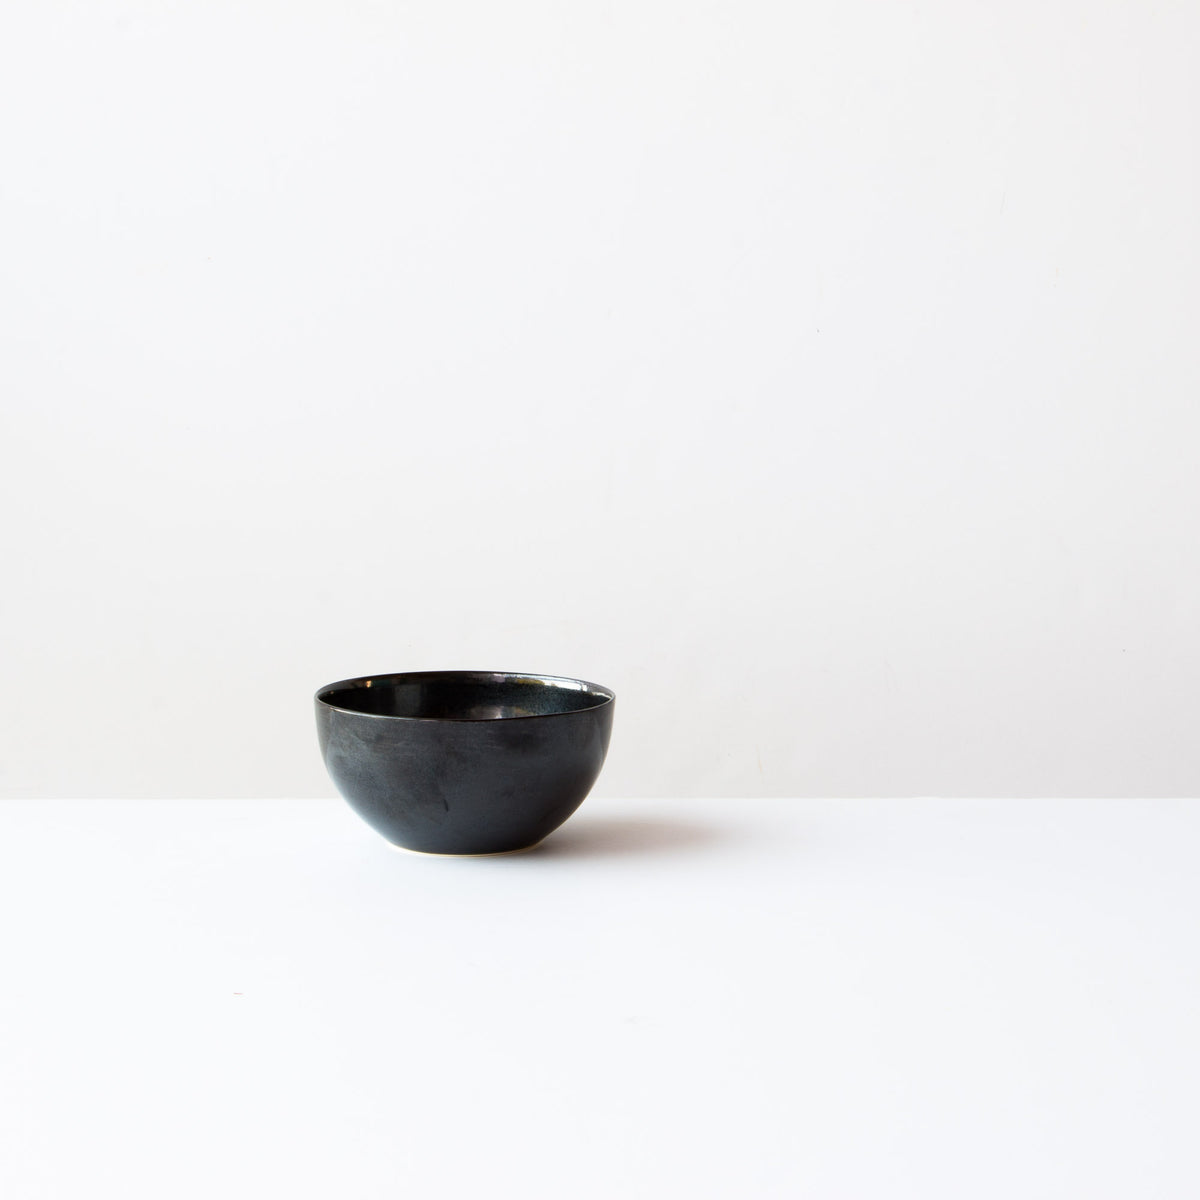 Handmade Porcelain Rice Bowl - Black Porcelain - Sold by Chic & Basta